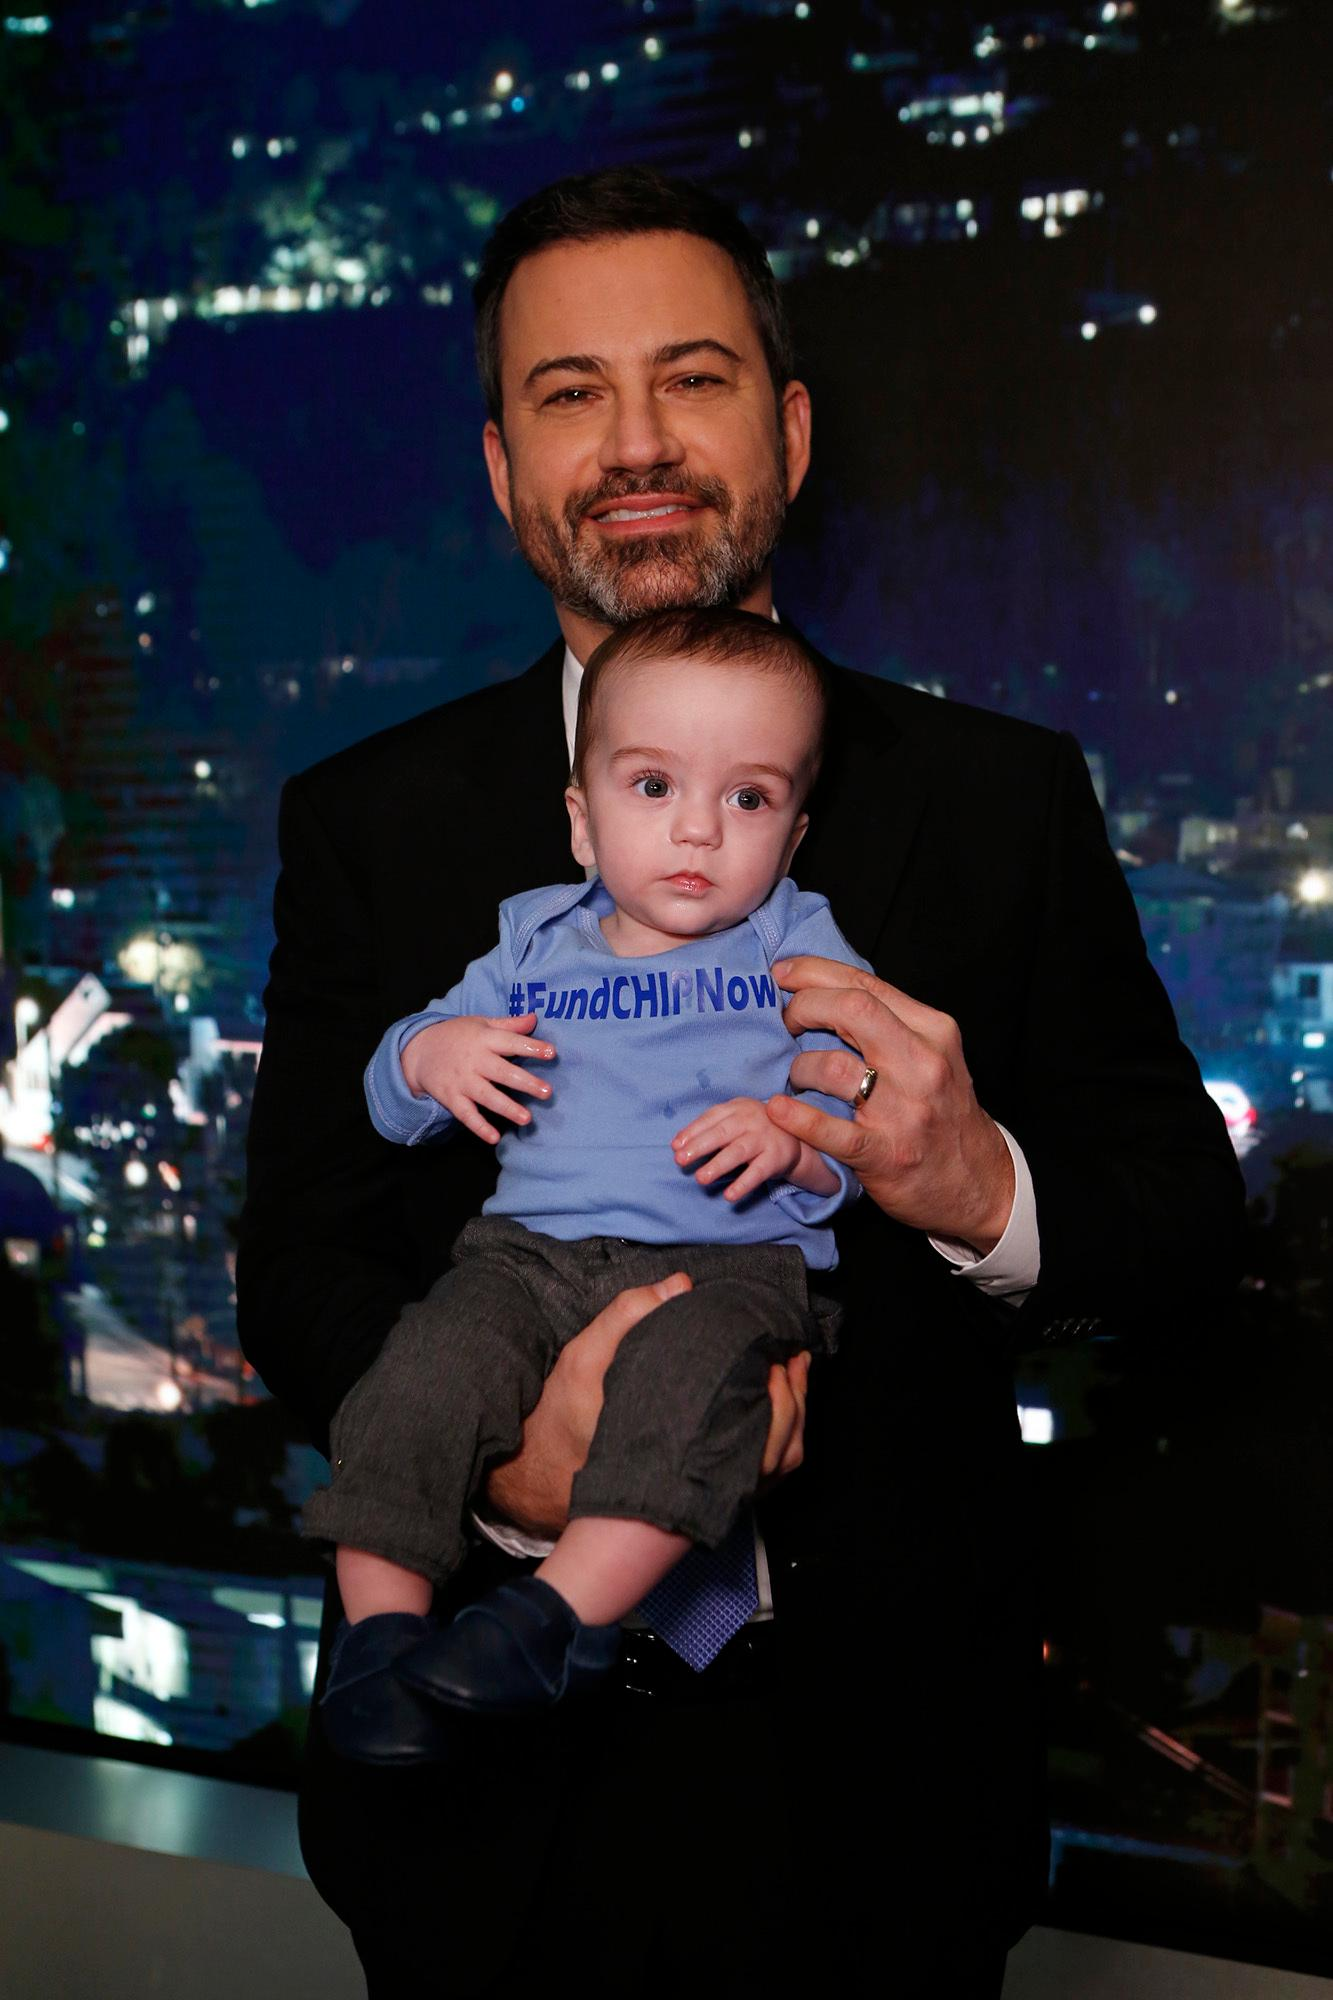 "This Dec. 11, 2017 image released by ABC shows host Jimmy Kimmel with his son Billy on the set of ""Jimmy Kimmel Live!"" Kimmel held his baby son as he returned to his late-night show after a week off for the boy's heart surgery. Kimmel kept up his ardent advocacy Monday night, urging Congress to restore the Children's Health Insurance Program, which has been left unfunded and stuck in a political stalemate since September. (Randy Holmes/ABC via AP)"